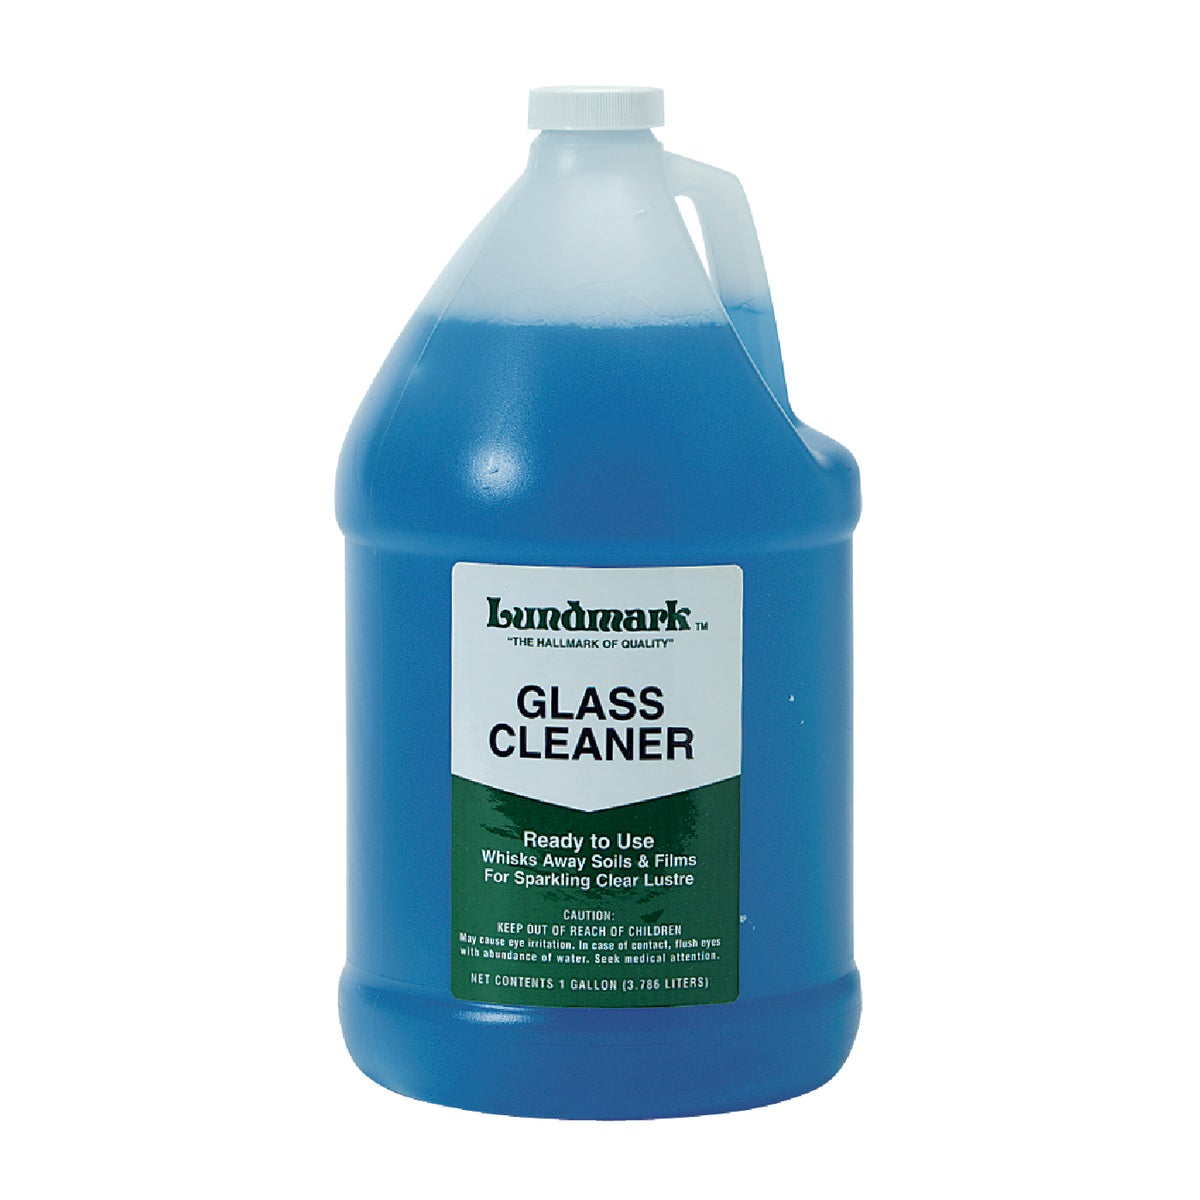 GALLON GLASS CLEANER